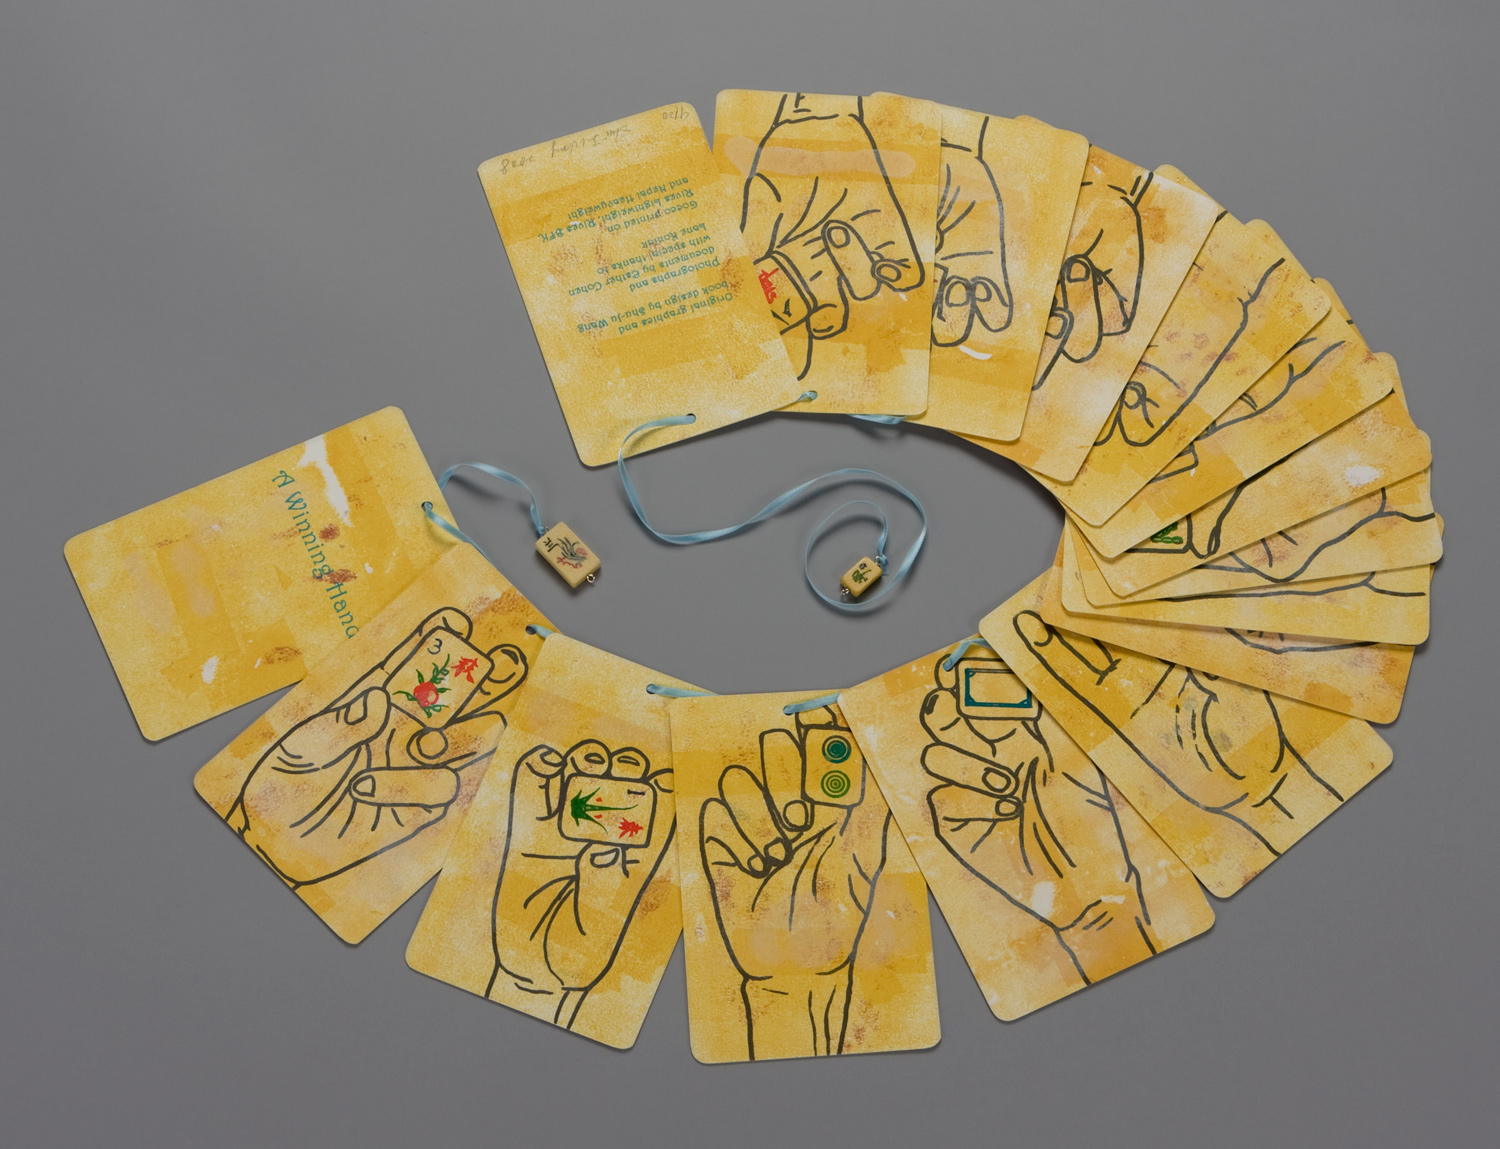 Book opened to show the back, a winning hand in 2008 American Mah Jongg.